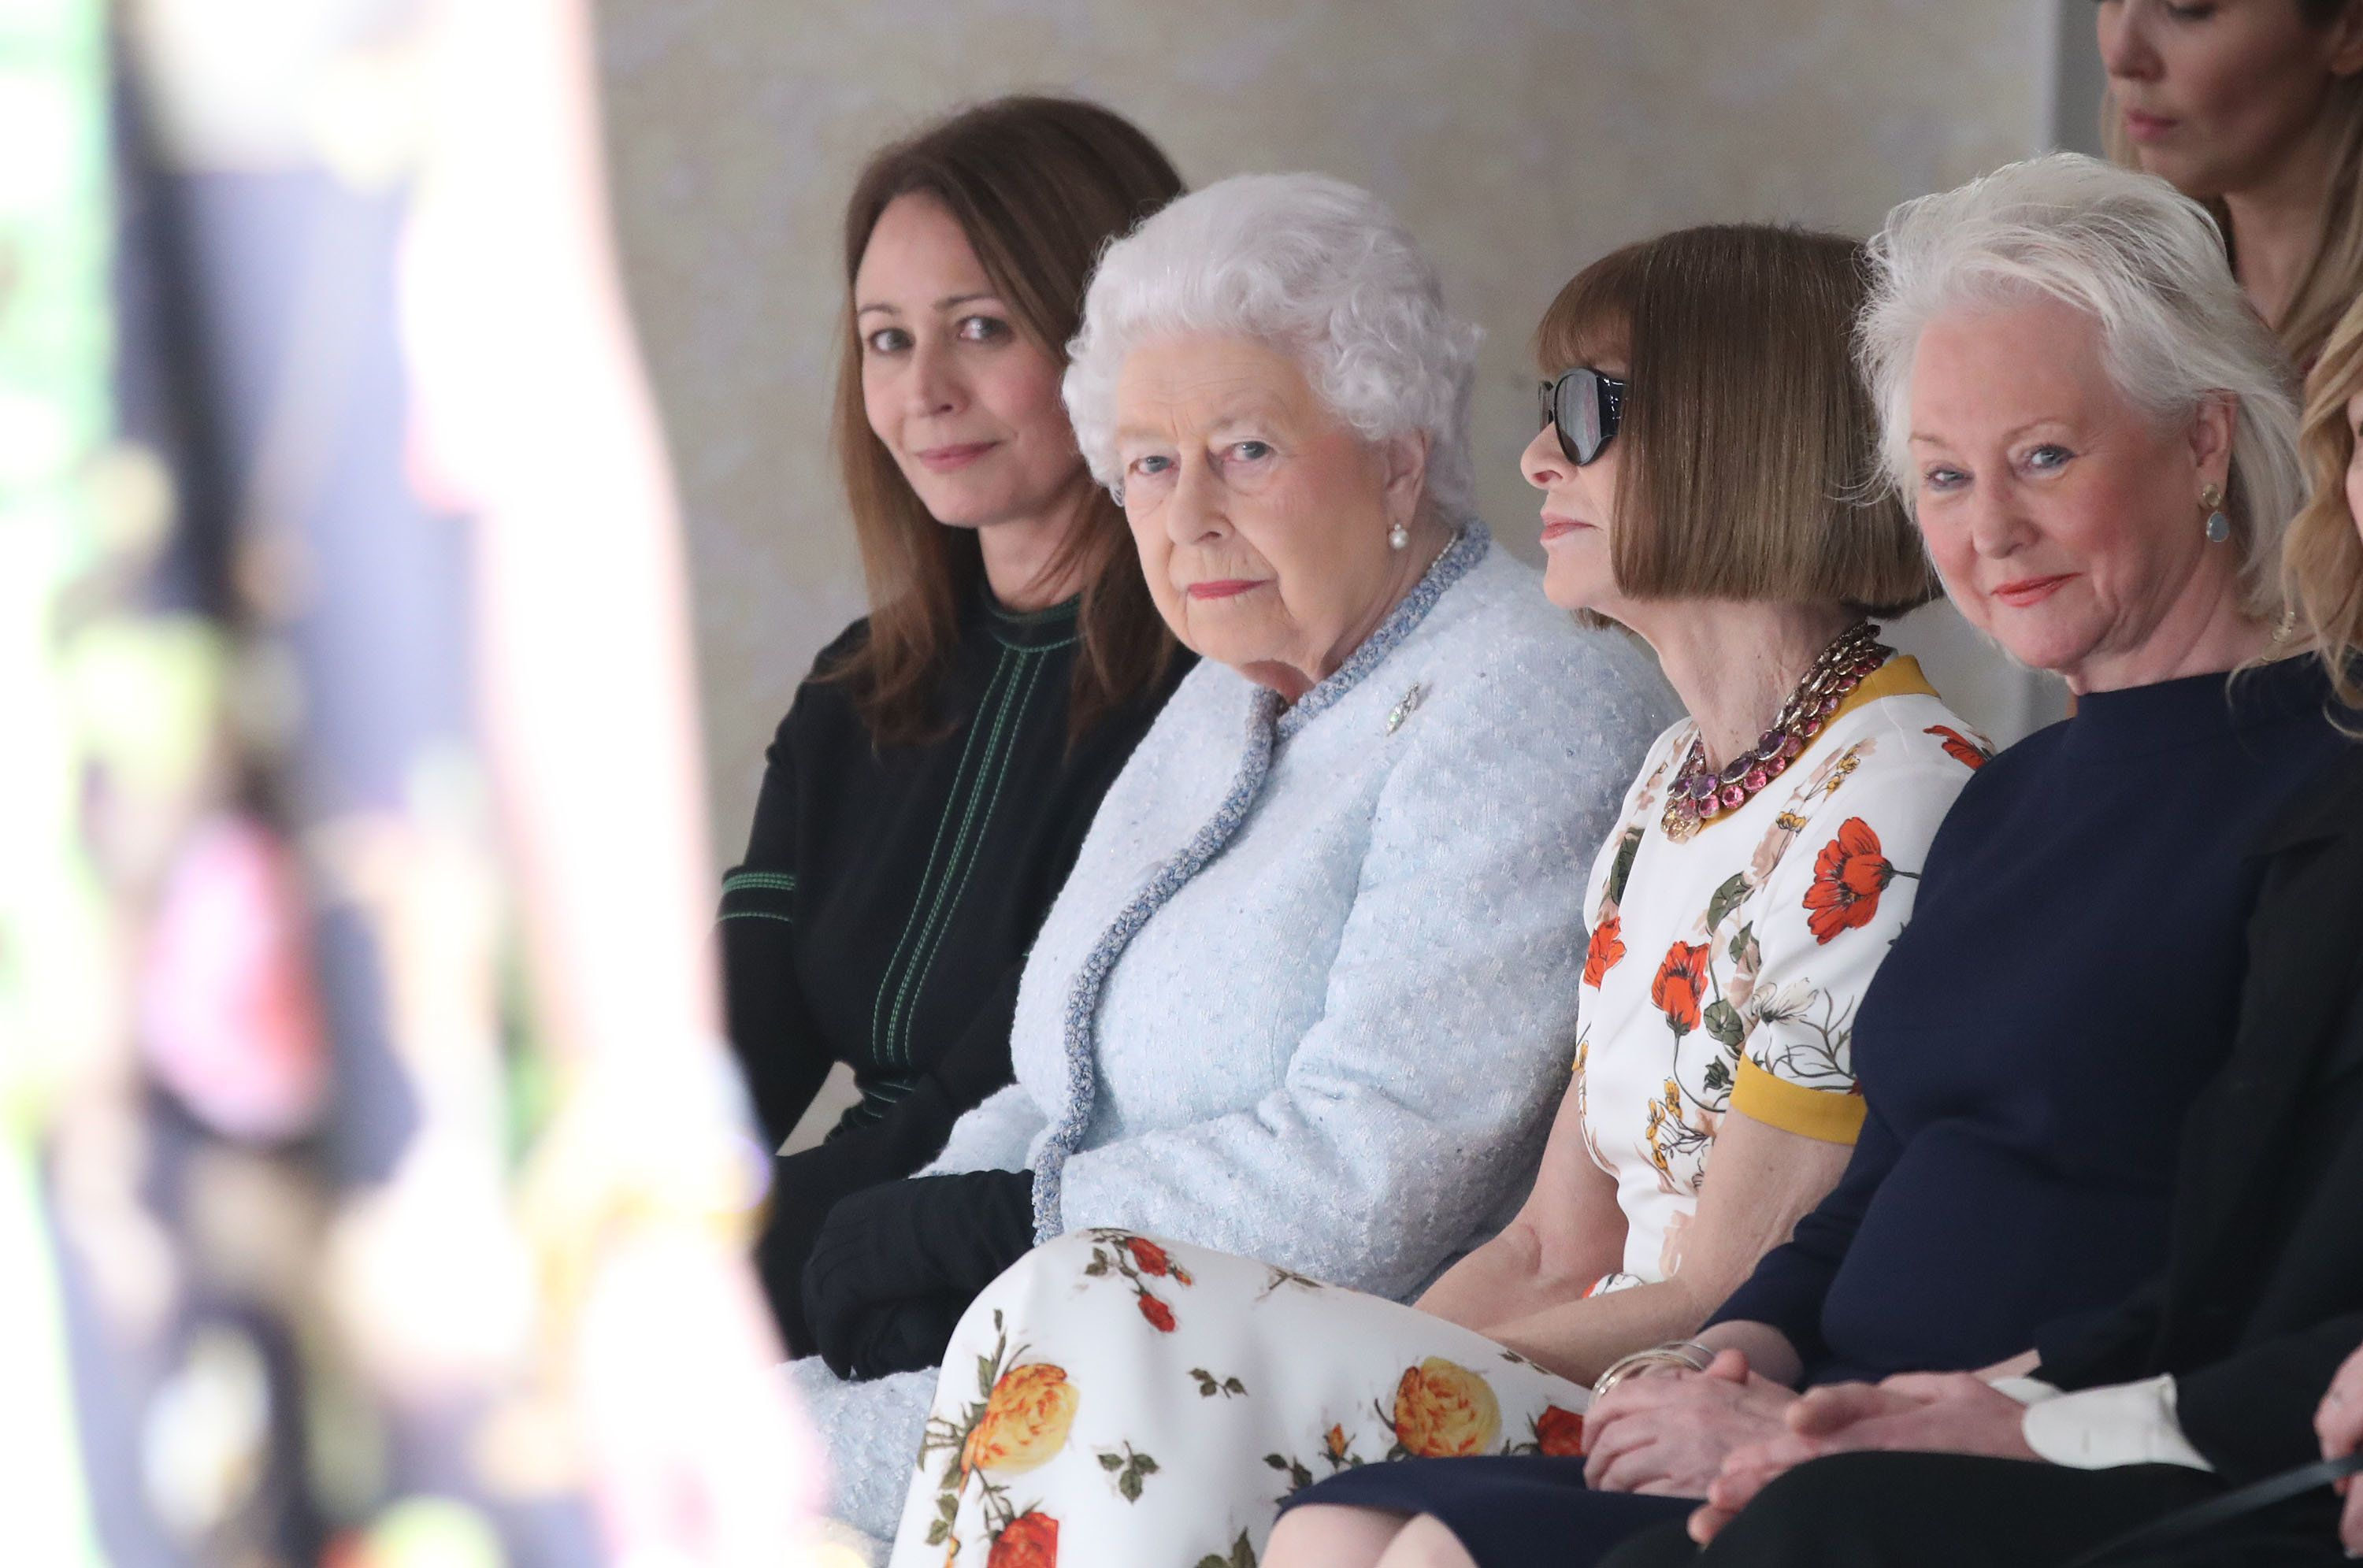 The Queen Was Sat Next To Anna Wintour At